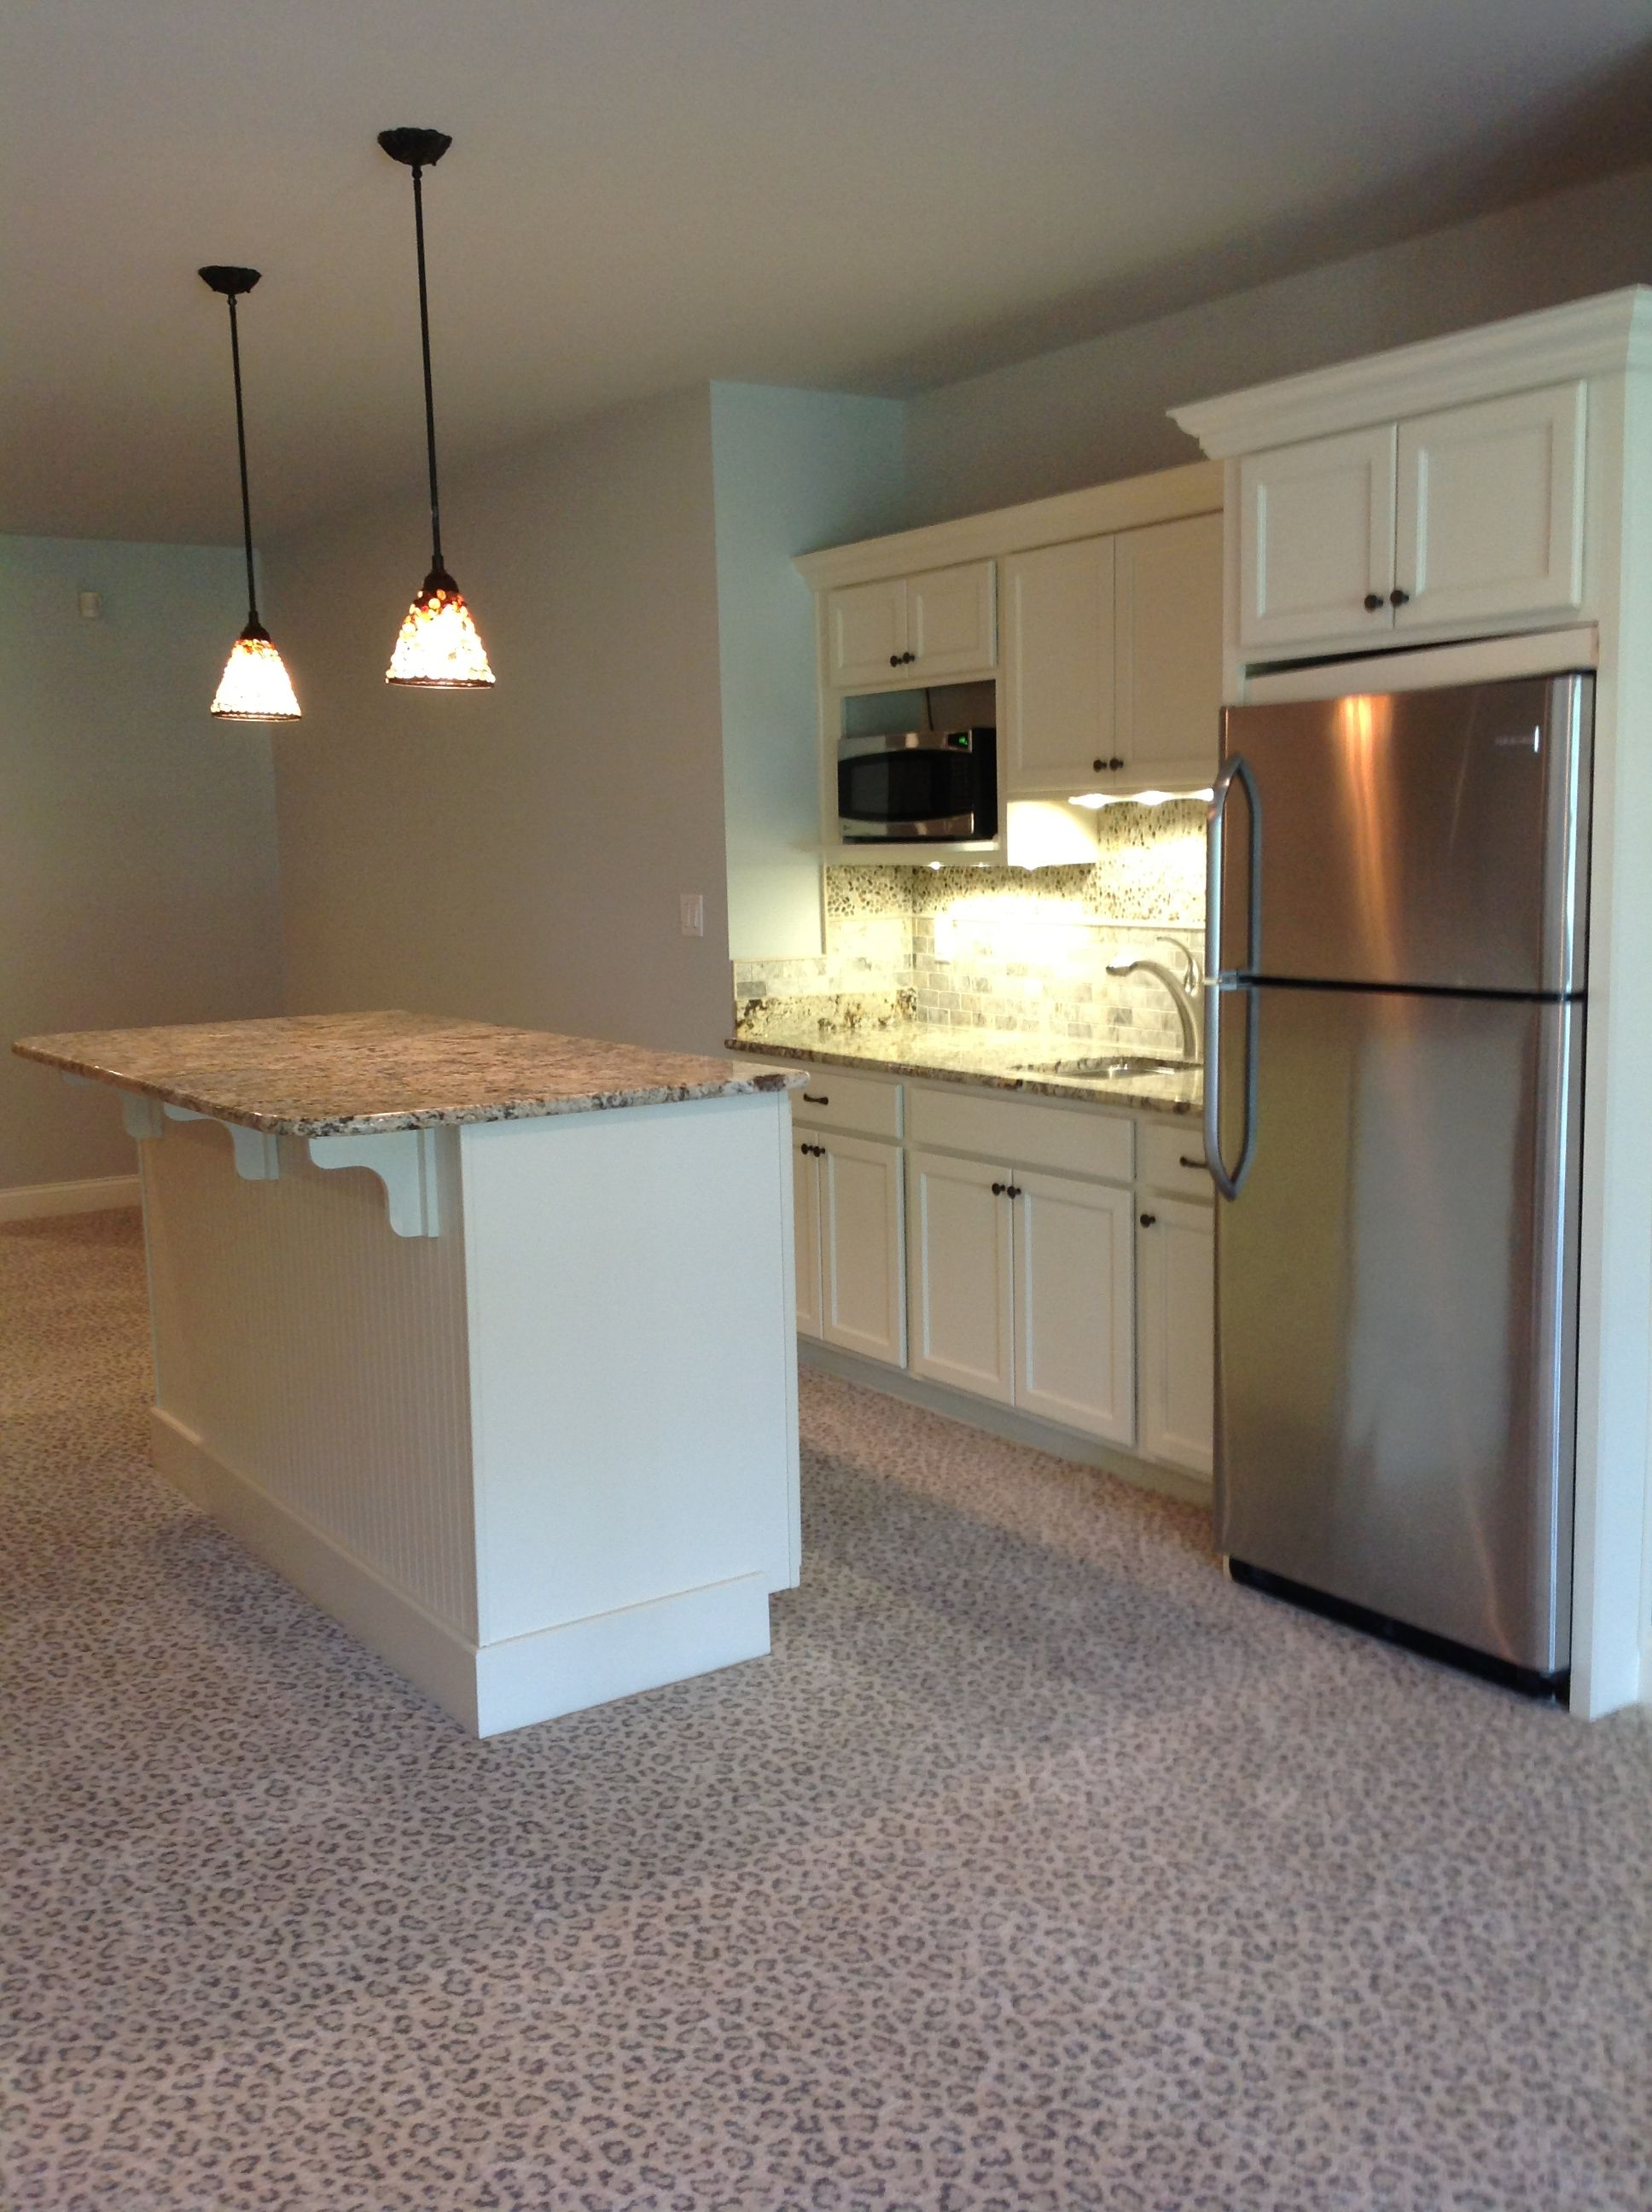 find this pin and more on basements ideas - Basement Apartment Ideas